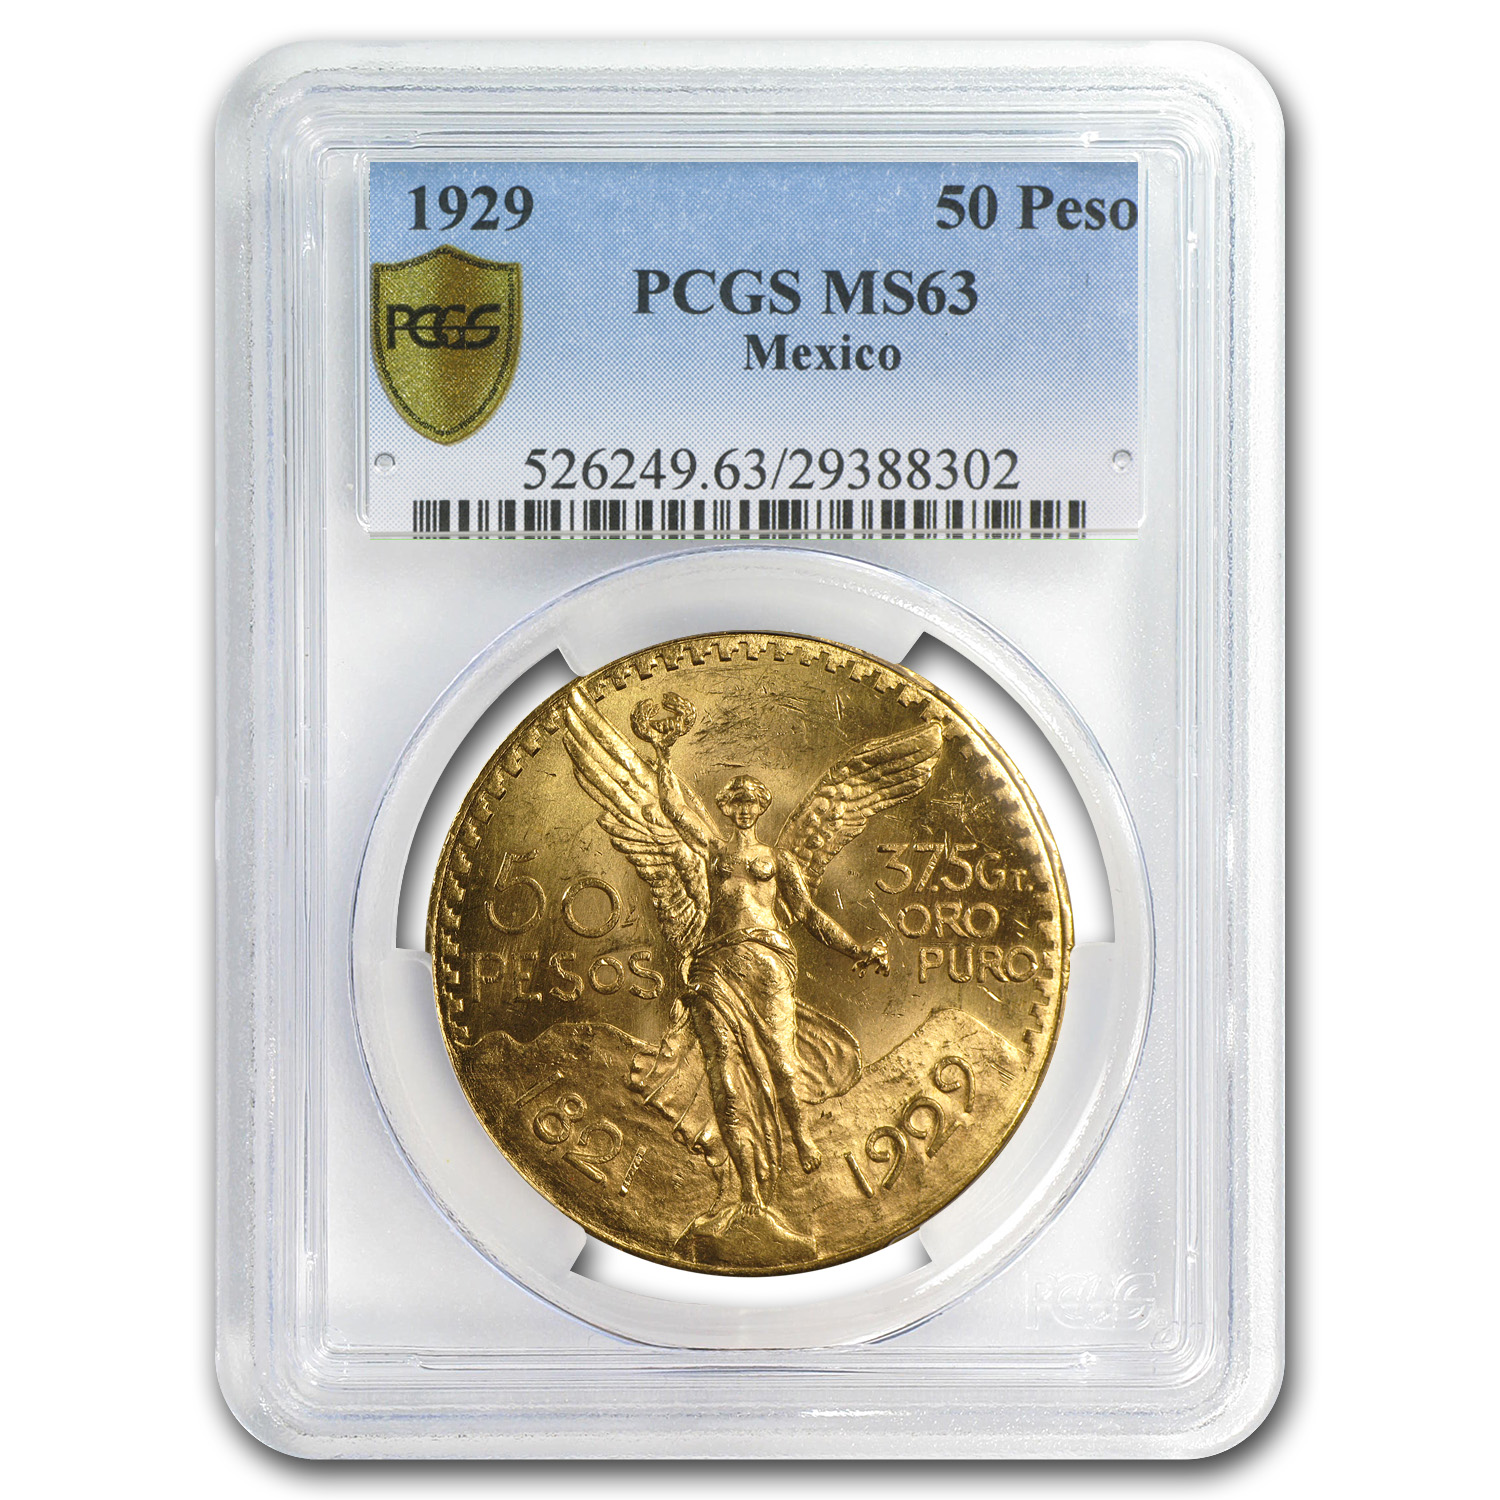 Mexico 1929 50 Pesos Gold MS-63 PCGS